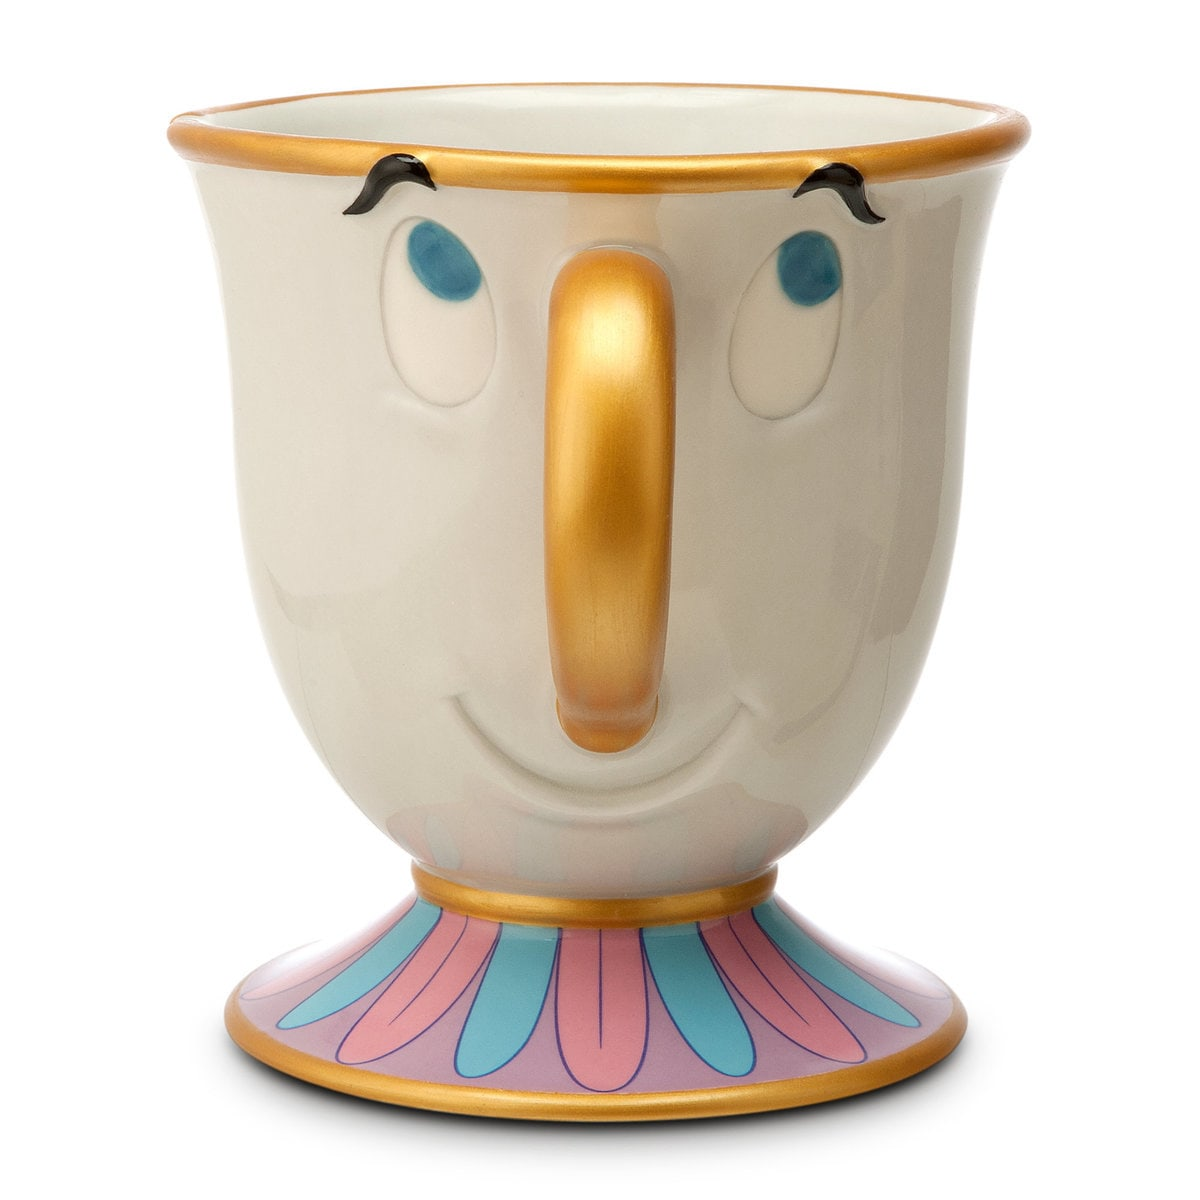 b9a31f1d3 Product Image of Chip Mug - Beauty and the Beast # 1